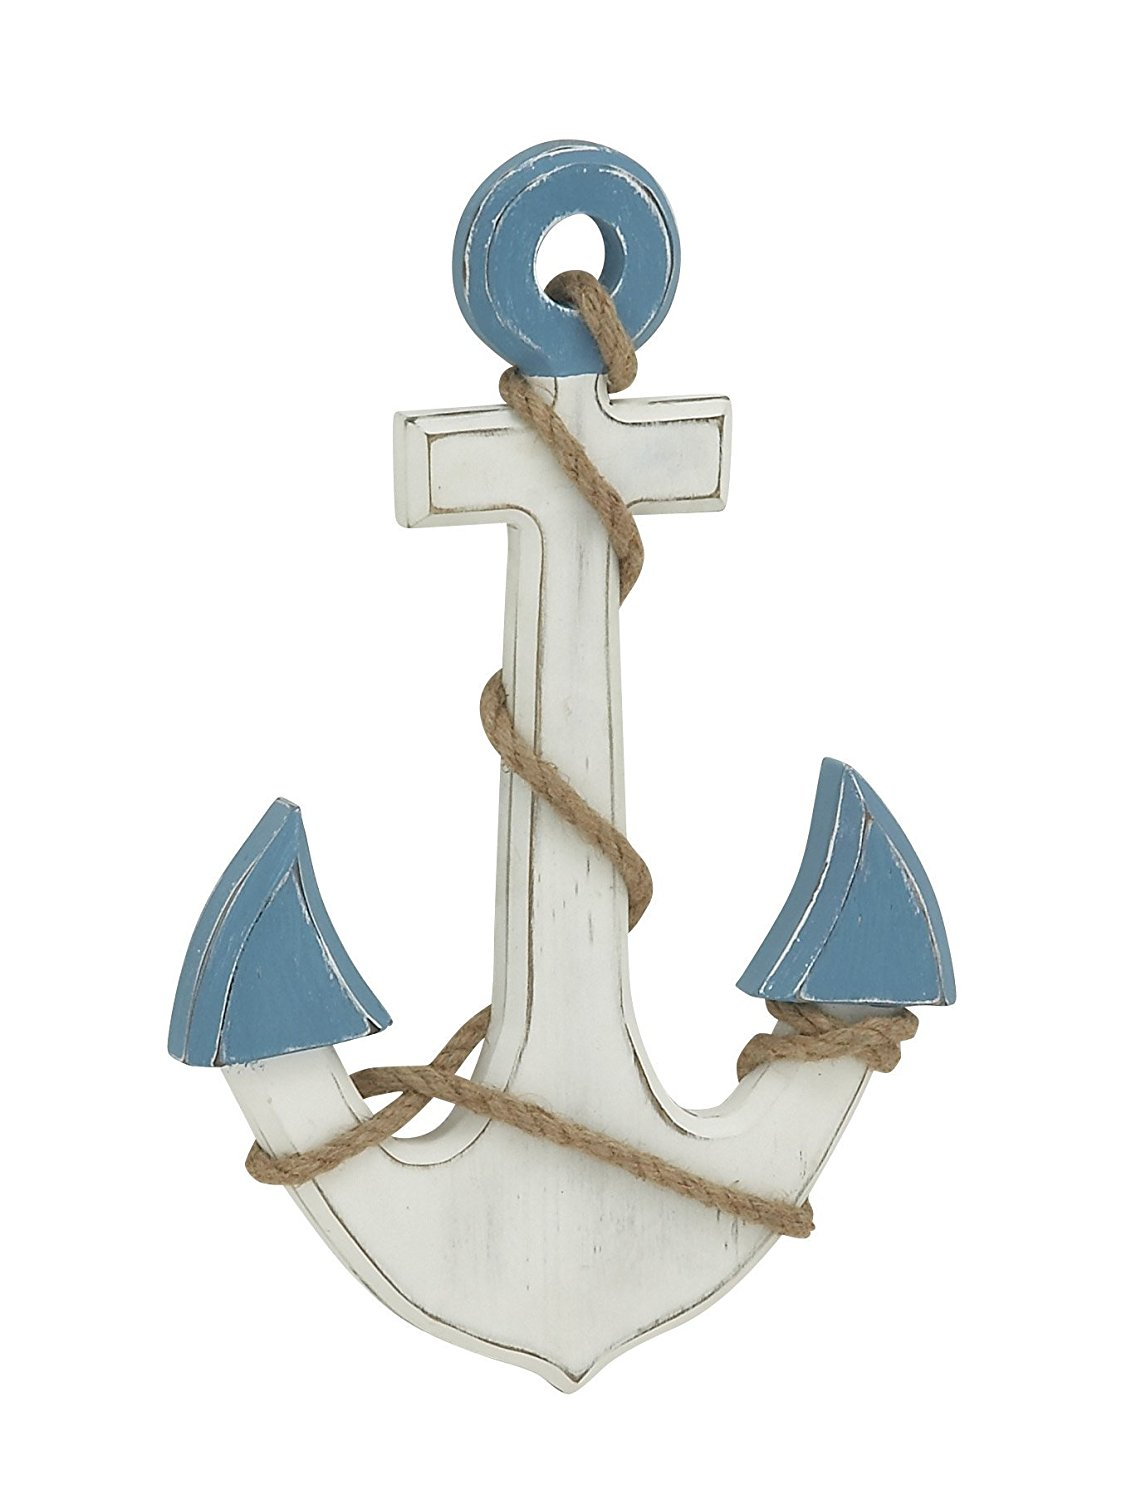 28338 Aluminium Desk Bell Nautical Maritime Decor, Great wall accent By Woodland Imports by